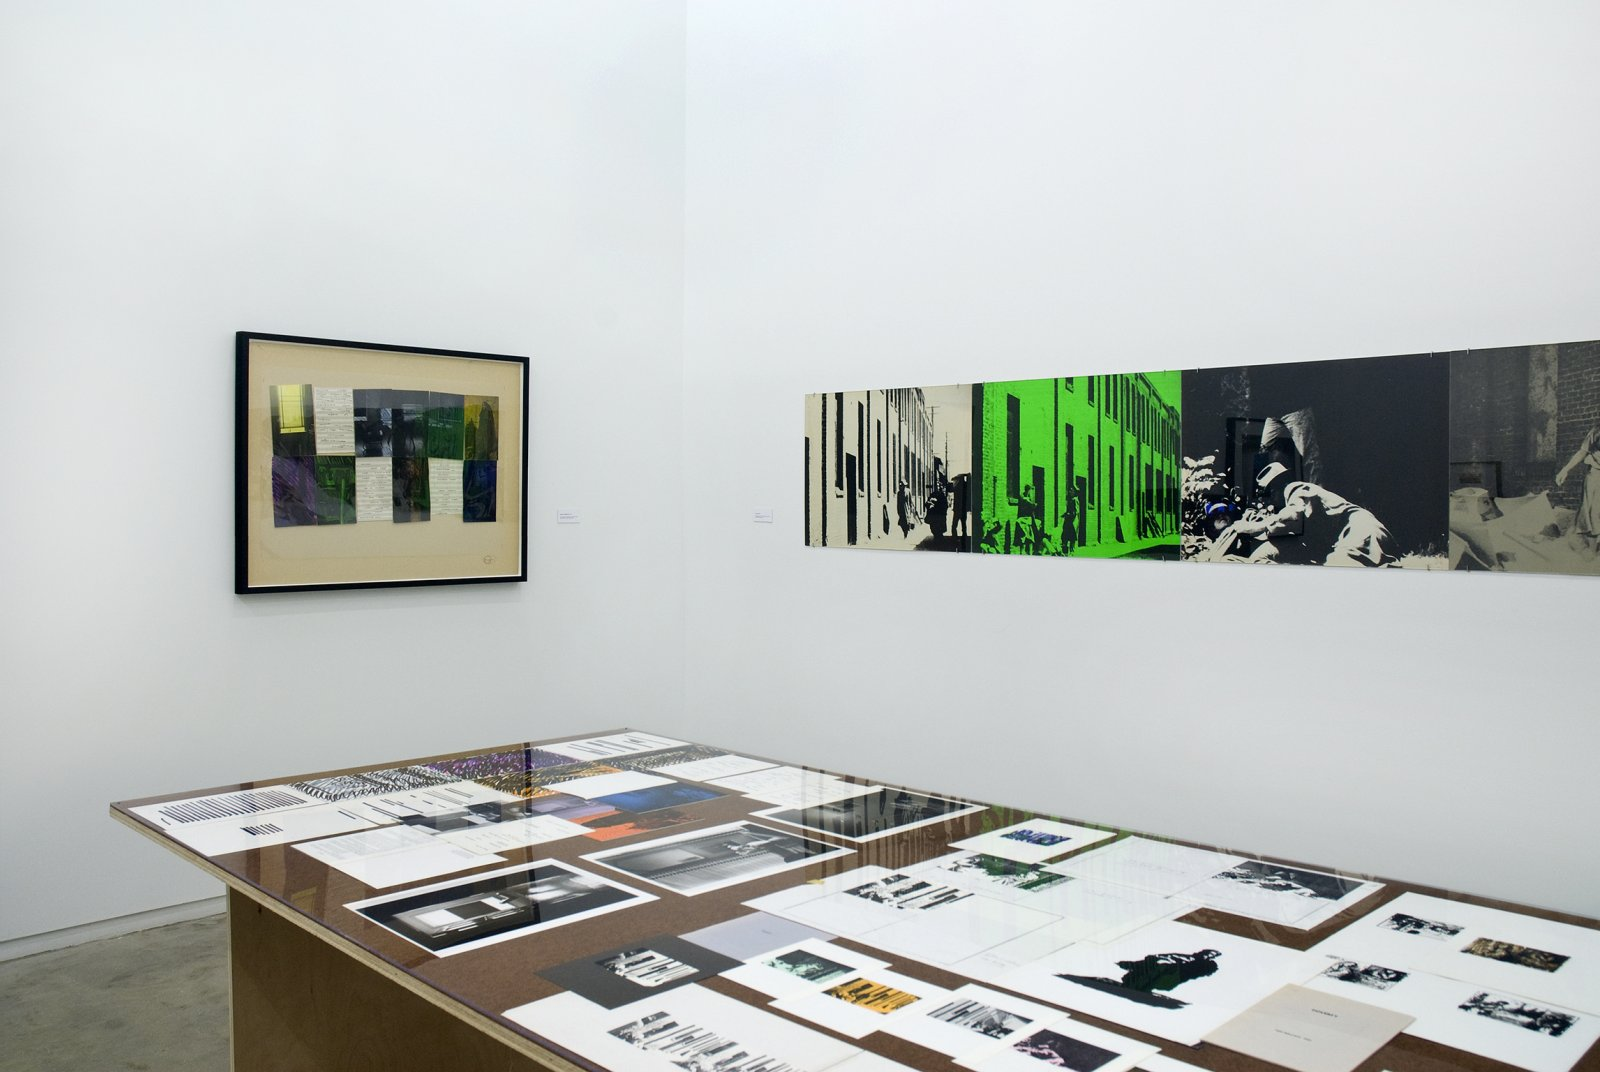 ​Ian Wallace, installation view, Works 1970–1979, Catriona Jeffries, 2009 by Ian Wallace